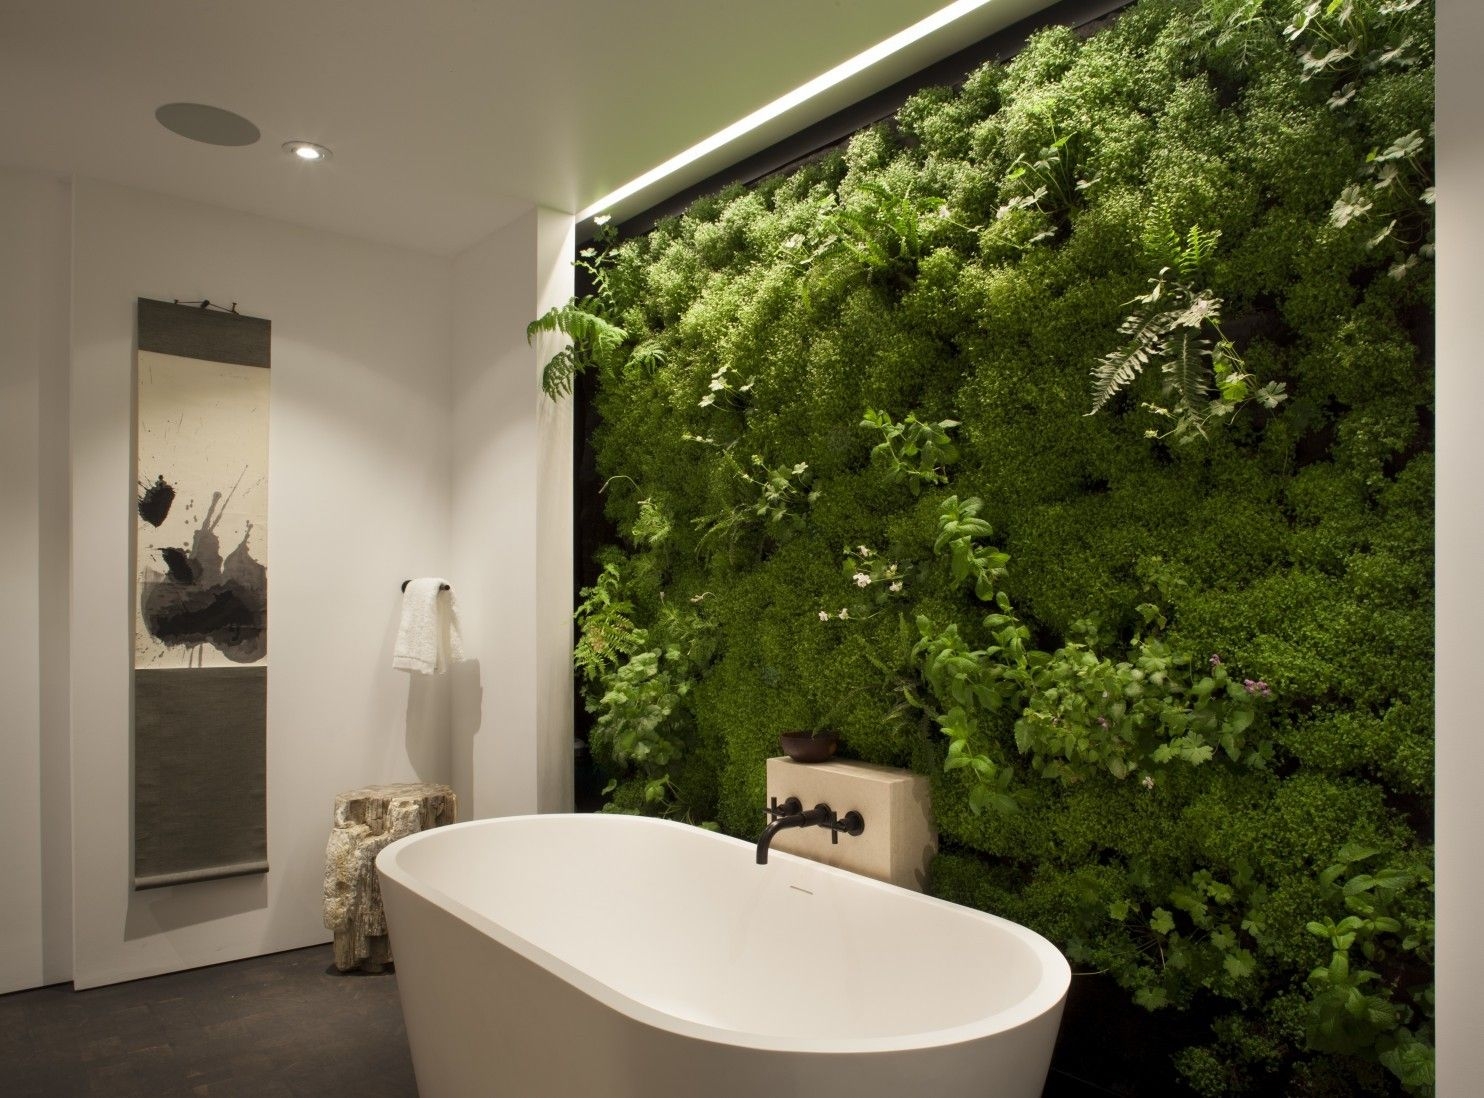 Indoor plant displays: built-ins, wall pockets and more - The Washington Post